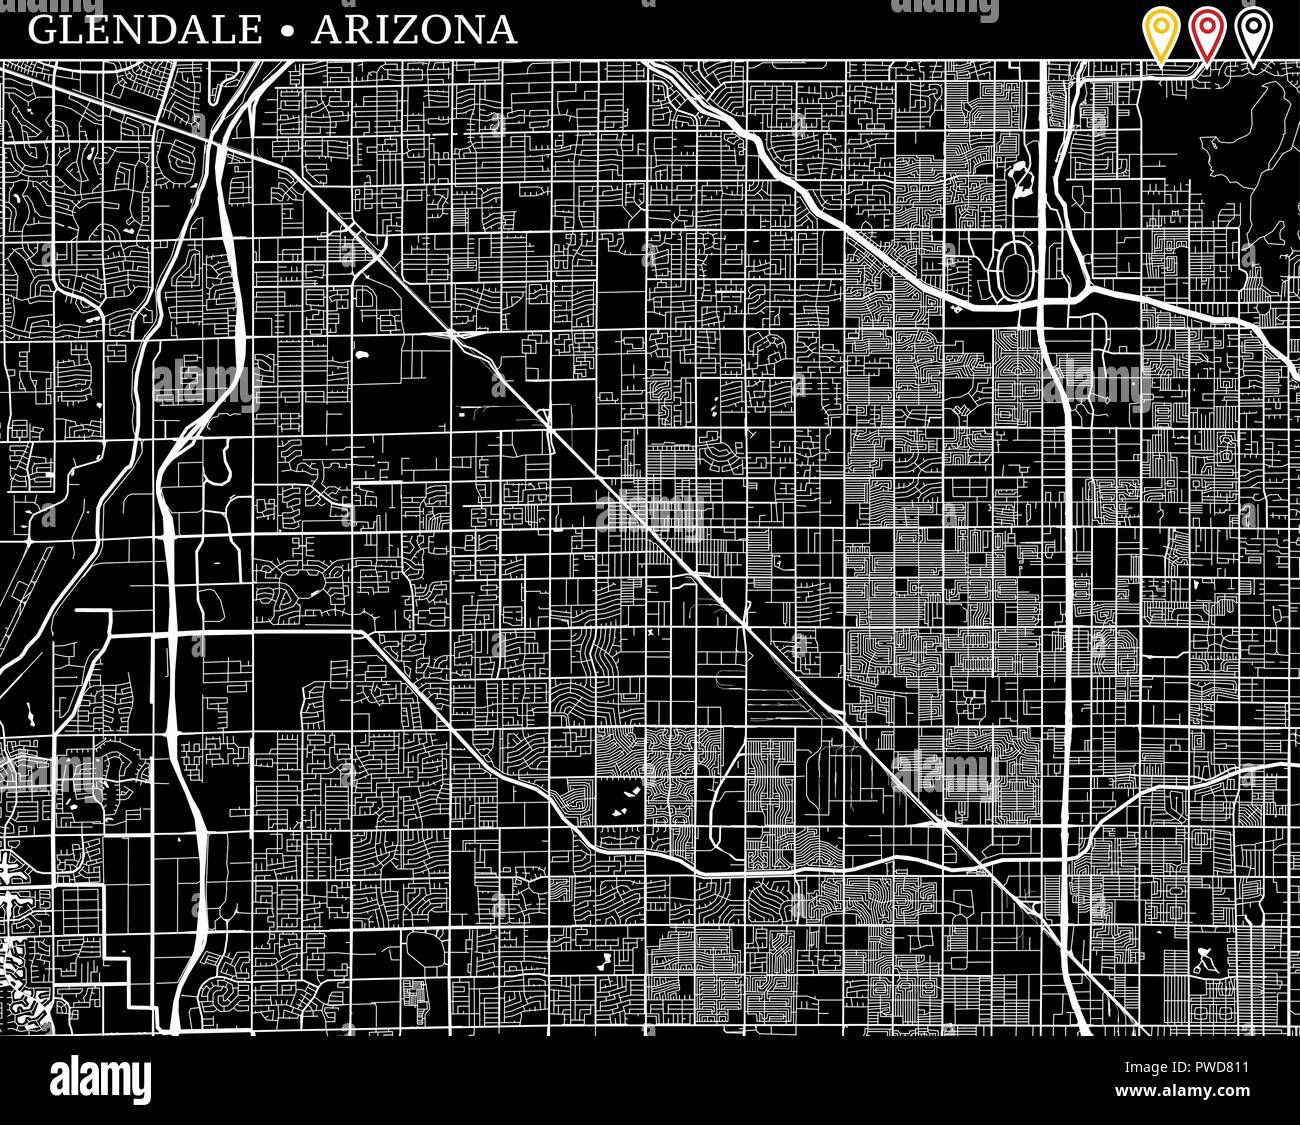 Simple map of Glendale, Arizona, USA. Black and white ... on klondyke arizona map, baderville arizona map, deer valley arizona map, st george arizona map, reno arizona map, havasu city arizona map, chino arizona map, big bear lake arizona map, santa fe arizona map, humboldt arizona map, eagle creek arizona map, mesquite arizona map, glendale az, tampa florida map, boise arizona map, gilbert arizona map, greasewood arizona map, hidden valley arizona map, mesa arizona map, north valley arizona map,